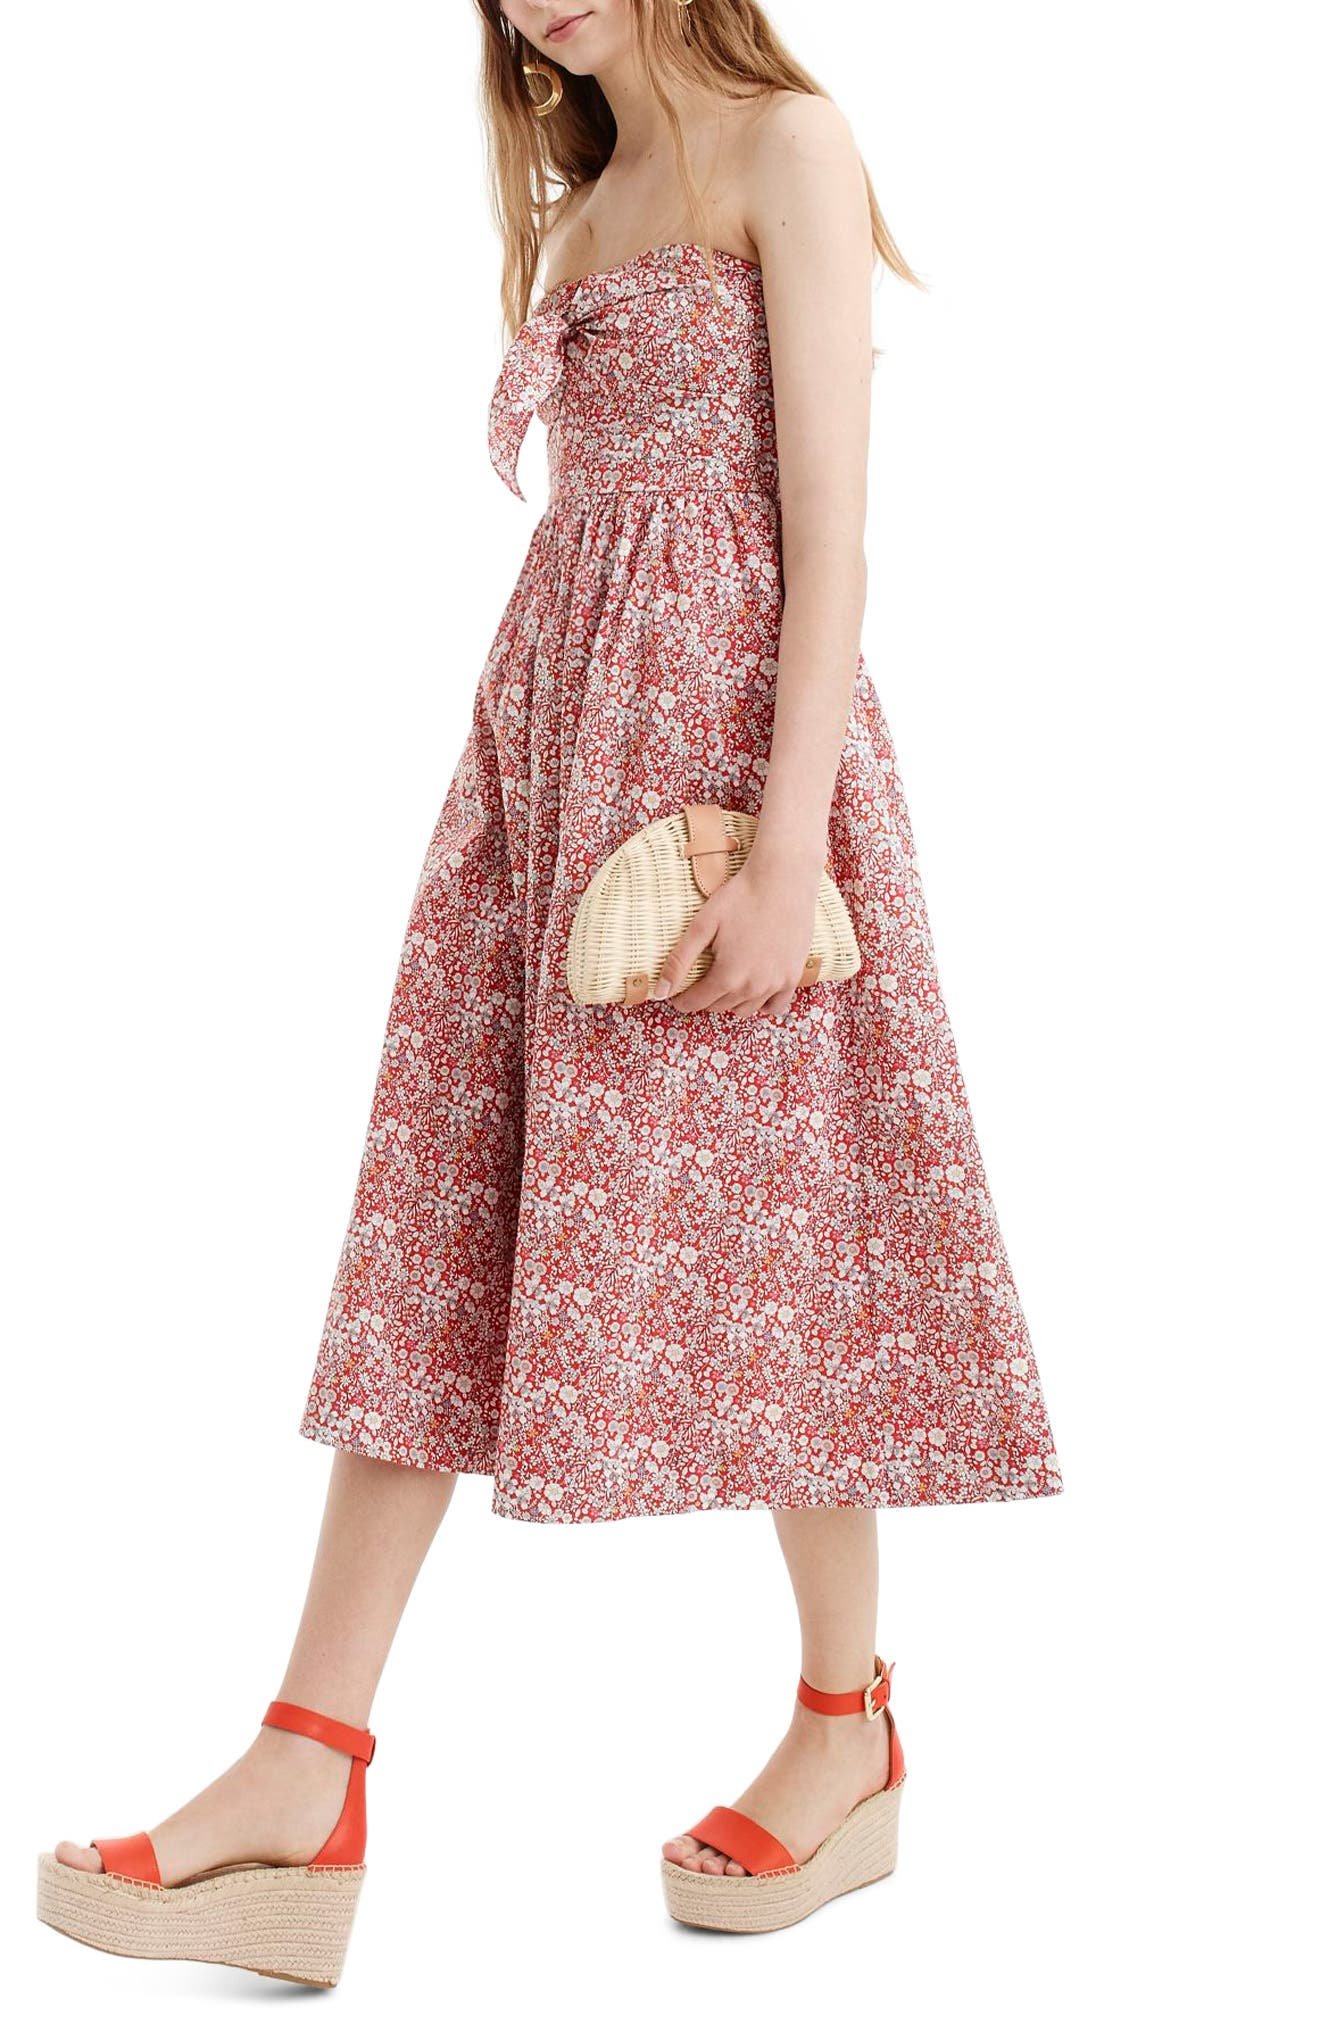 Liberty Tie Front Strapless Dress,                             Main thumbnail 1, color,                             600